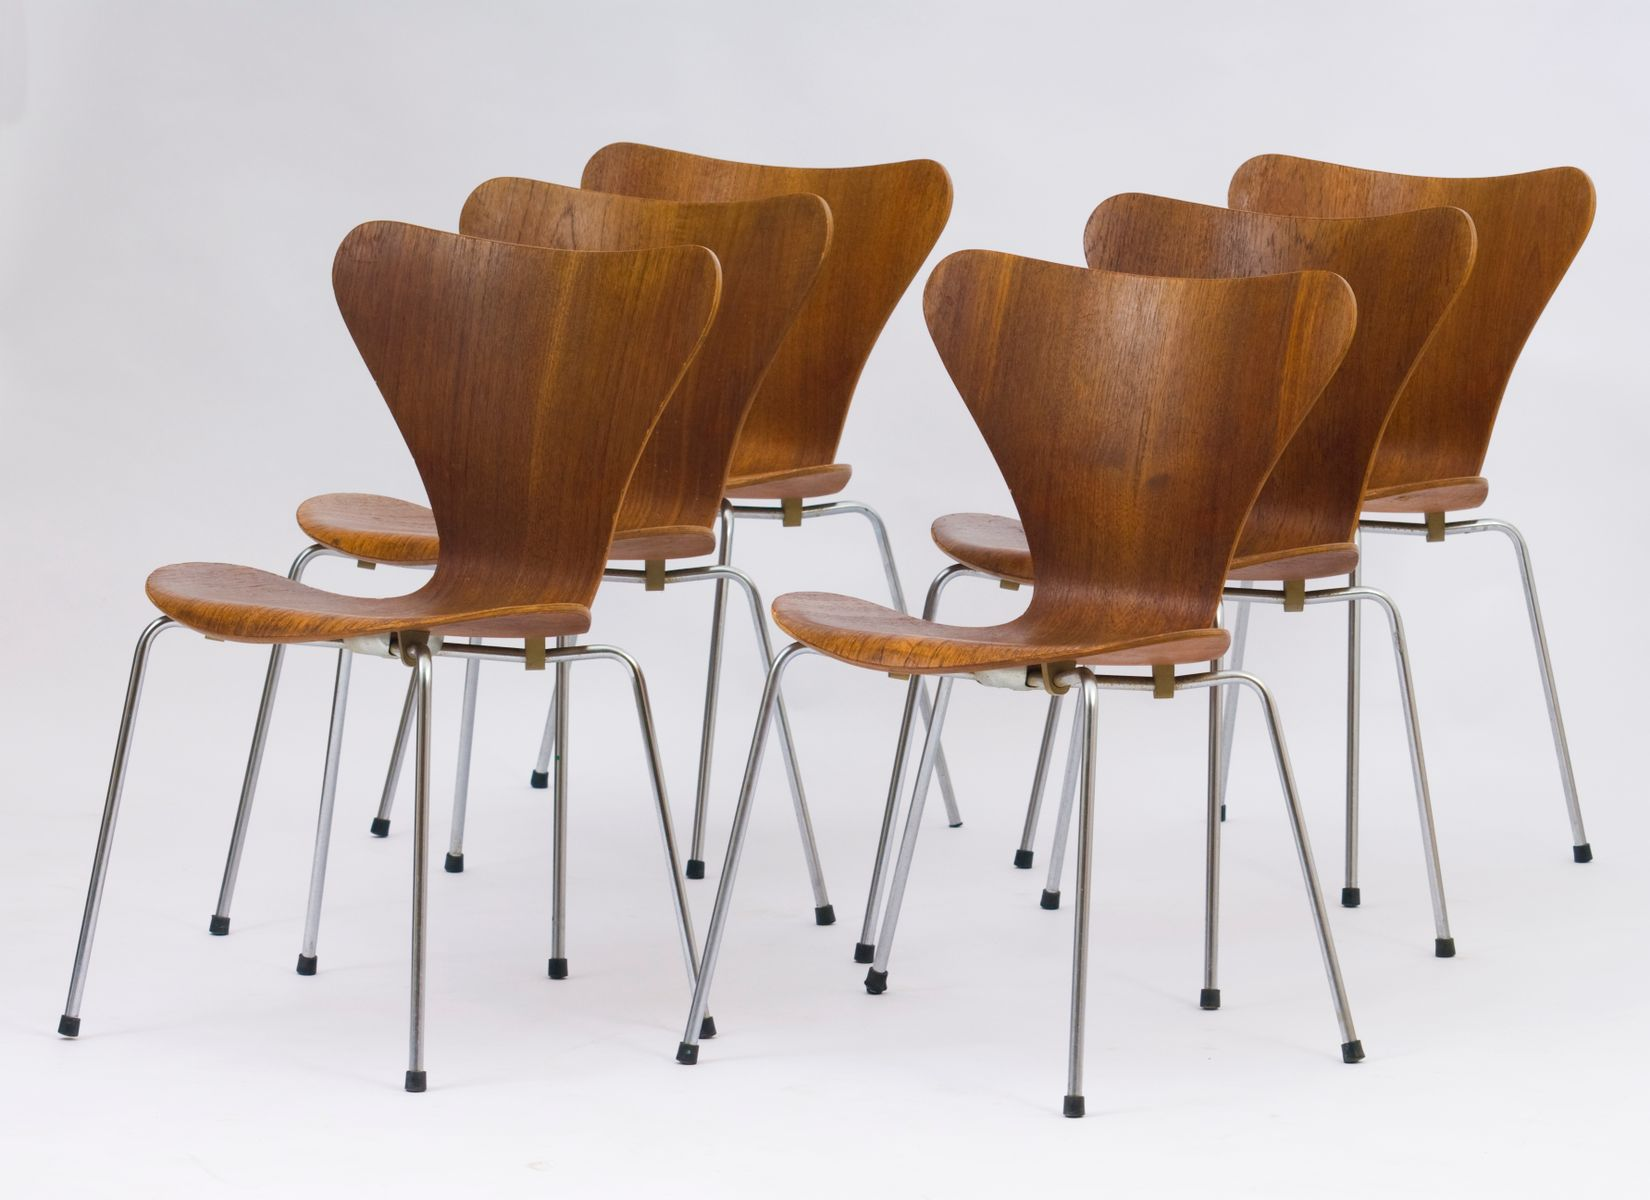 Vintage Series 7 Chairs By Arne Jacobsen For Fritz Hansen,